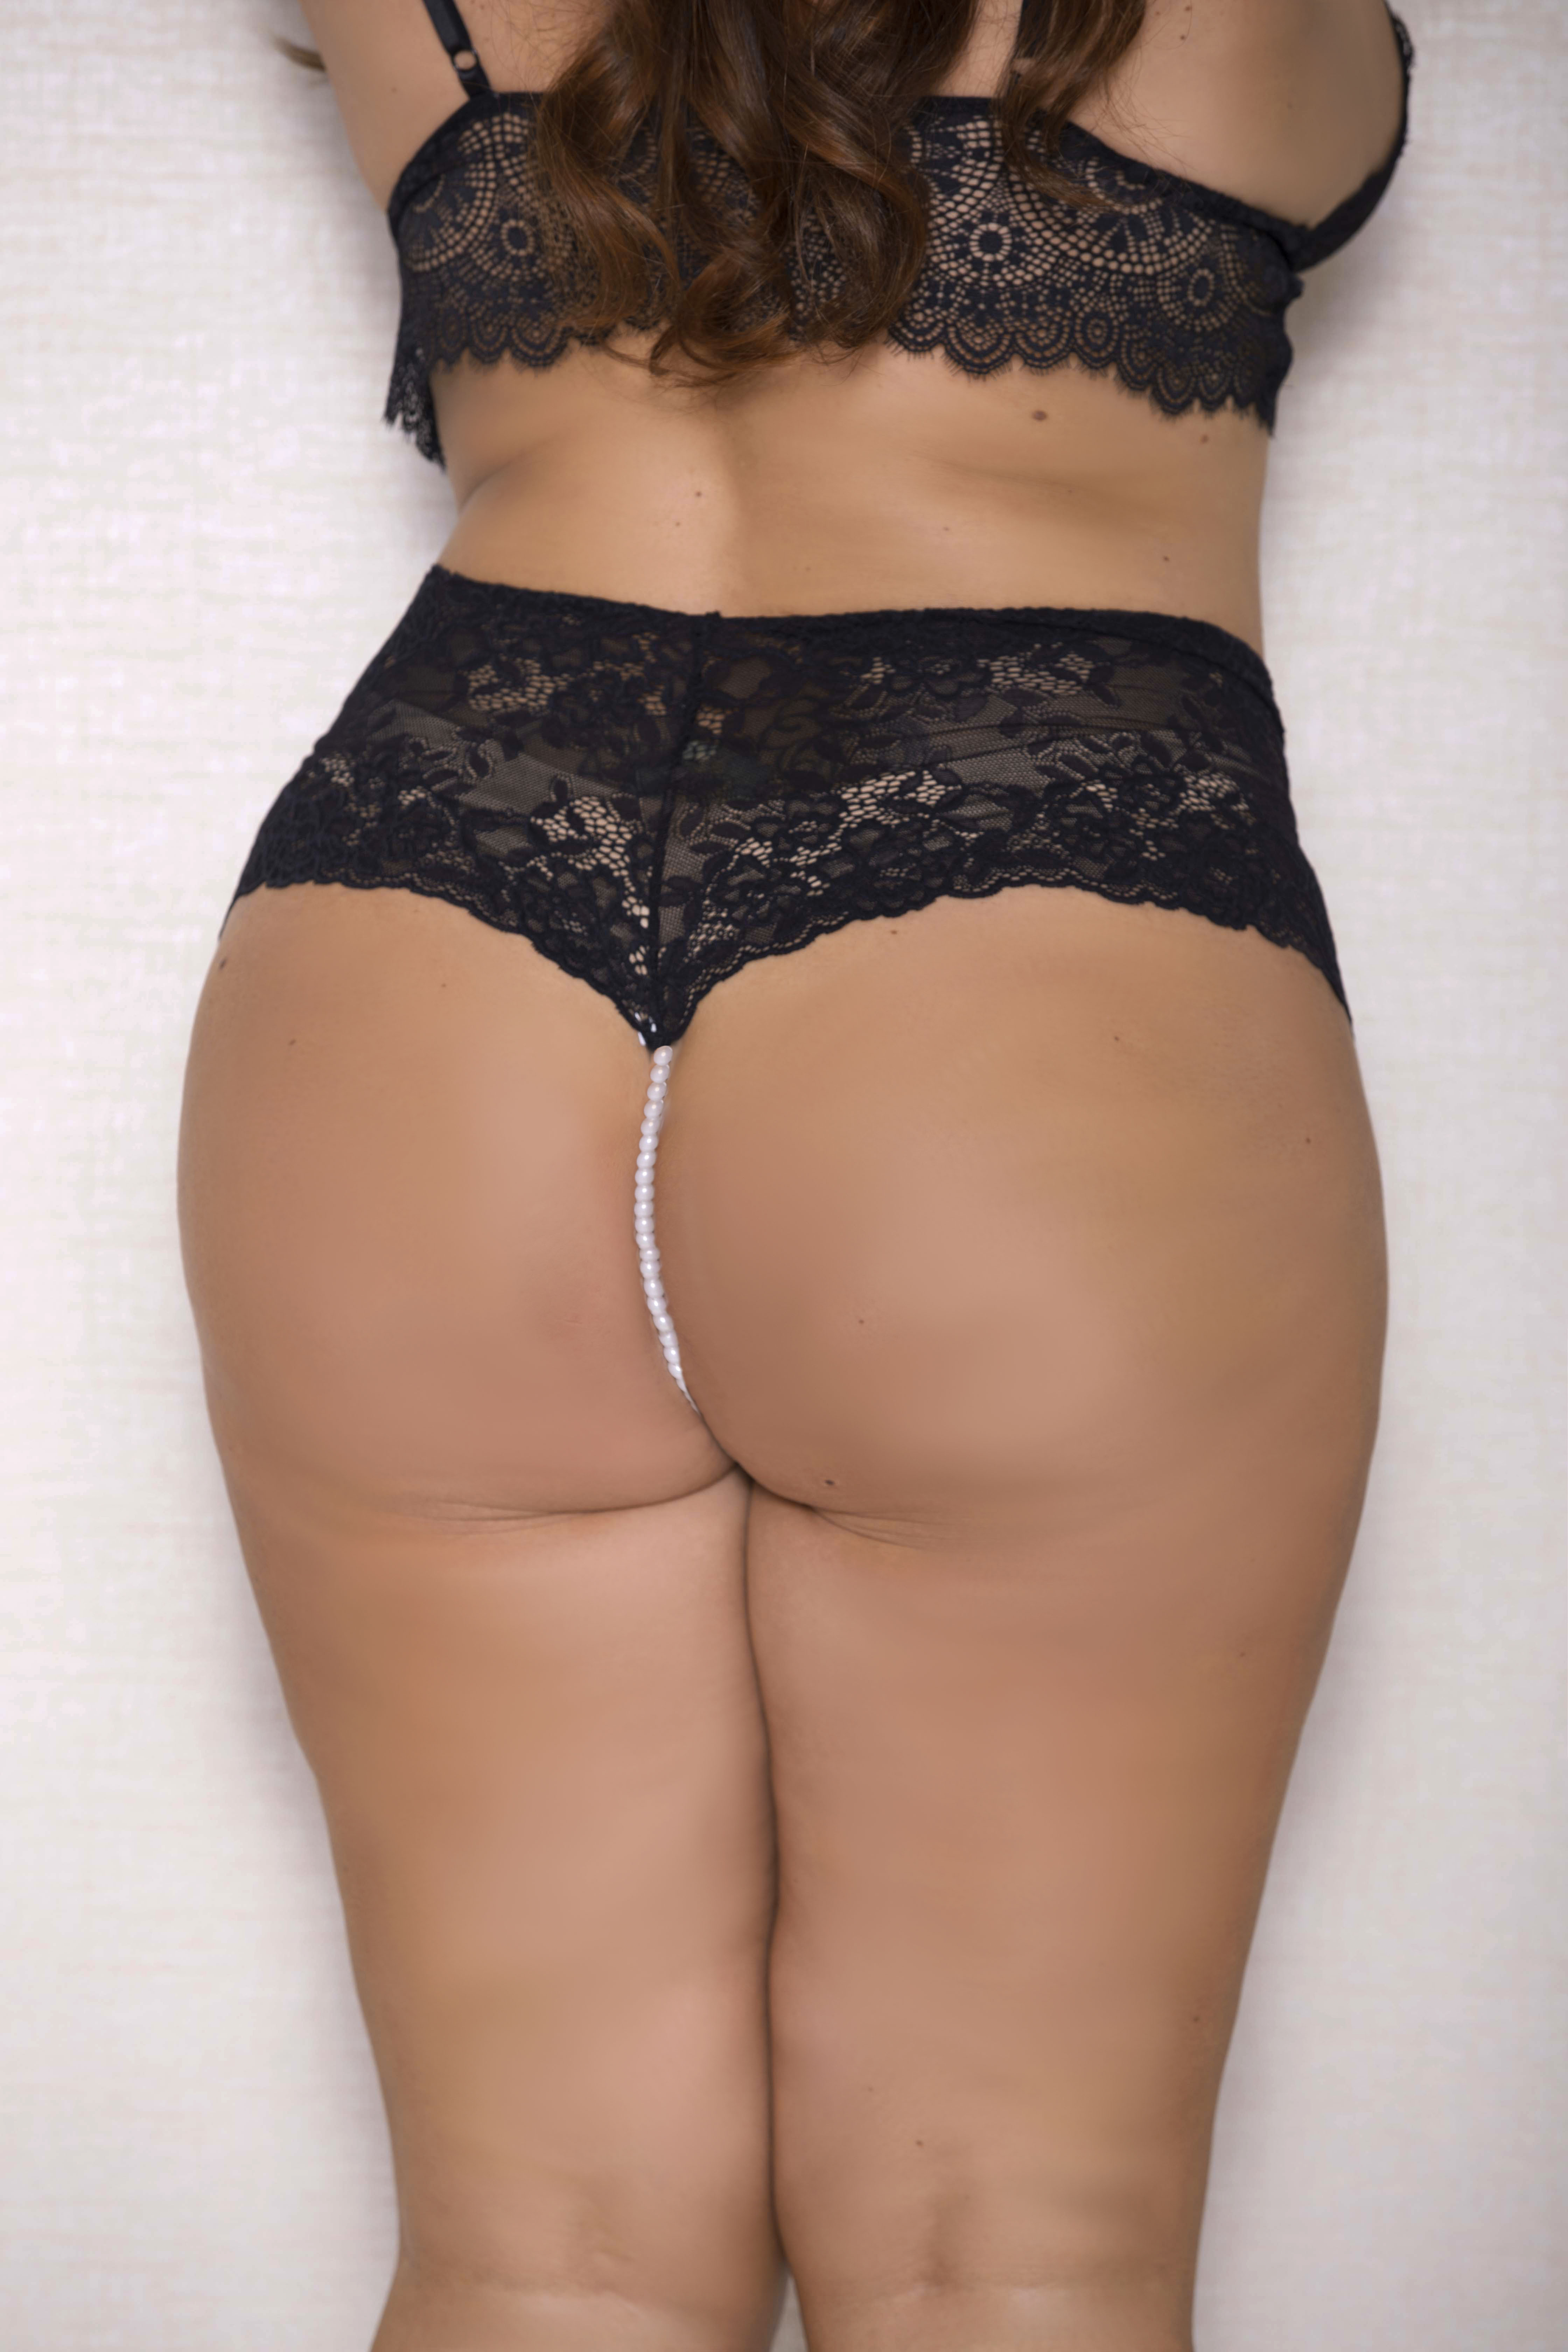 04e09472bf5ab3 iCollection Lace And Open Crotch Pearl String Boy Short-7120X larger image